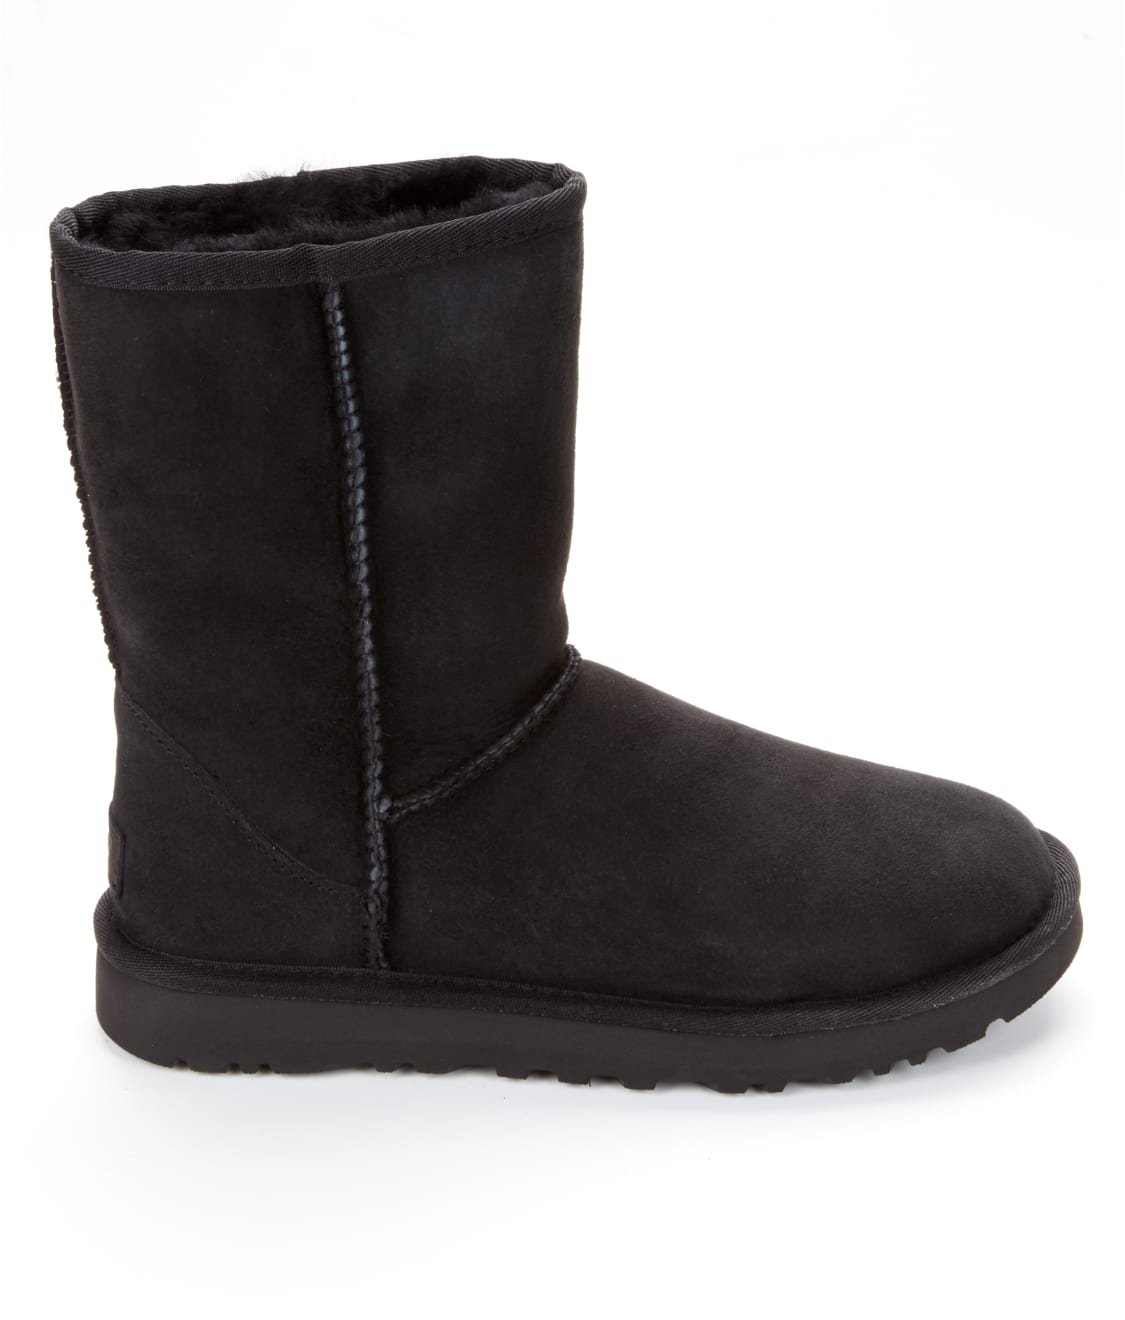 See Classic Short Boots II in Black